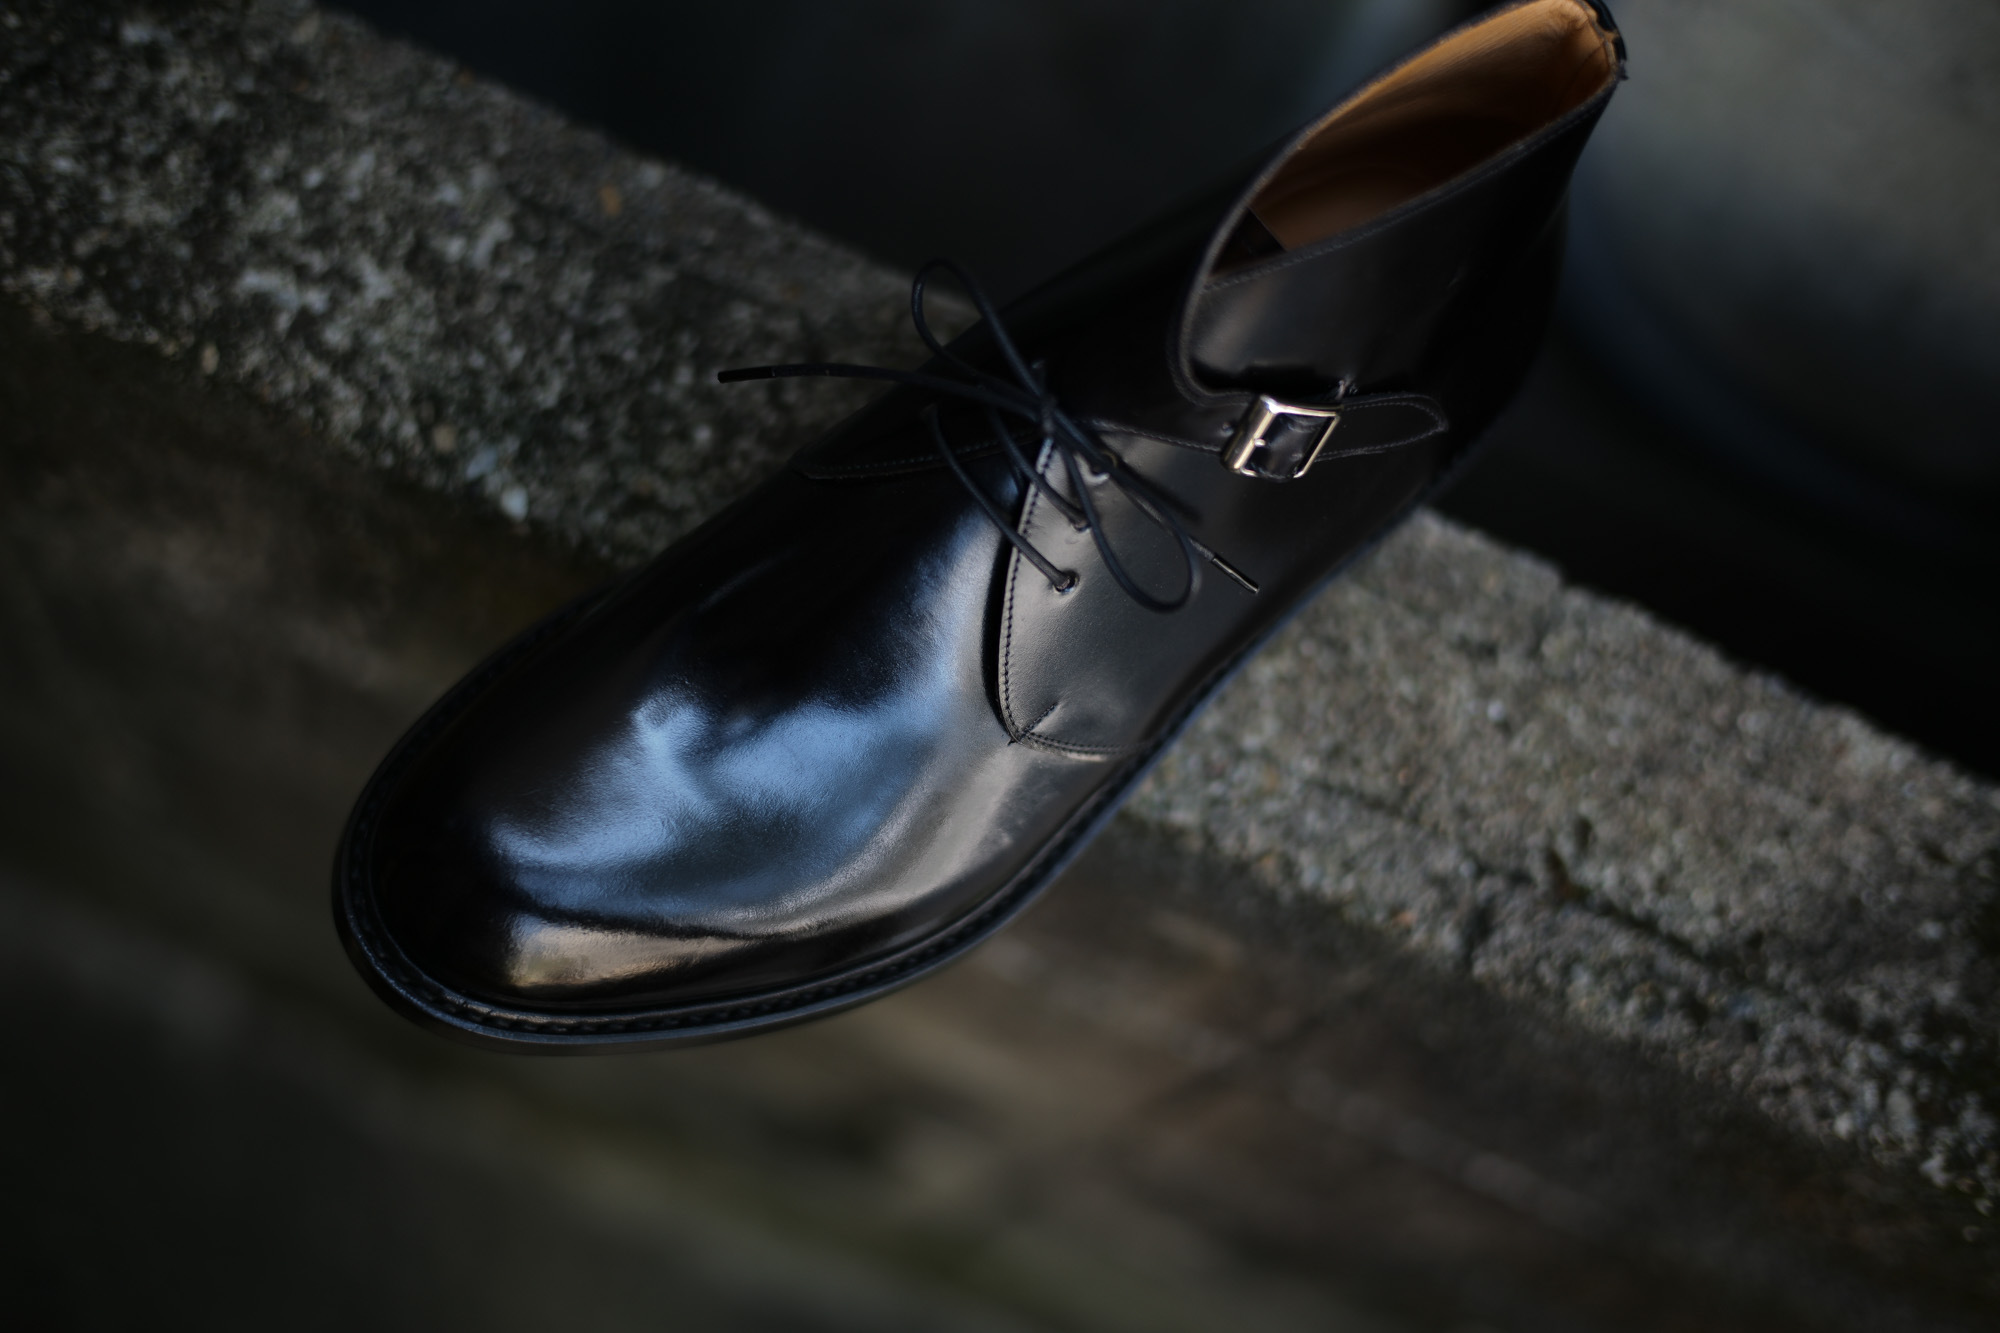 Cuervo (クエルボ)  【2017 AW NEW MODEL】Derringer (デリンジャー) 【CORDOVAN / コードバン】 Goodyear Welt Process Double Leather Sole  Chukkaboots BLACK MADE IN JAPAN 【Special Model 1st sample】 cuervoクエルボ チャッカブーツ 愛知 名古屋 Alto e Diritto アルト エ デリット 5.5,6,6.5,7,7.5,8,8.5,9,9.5